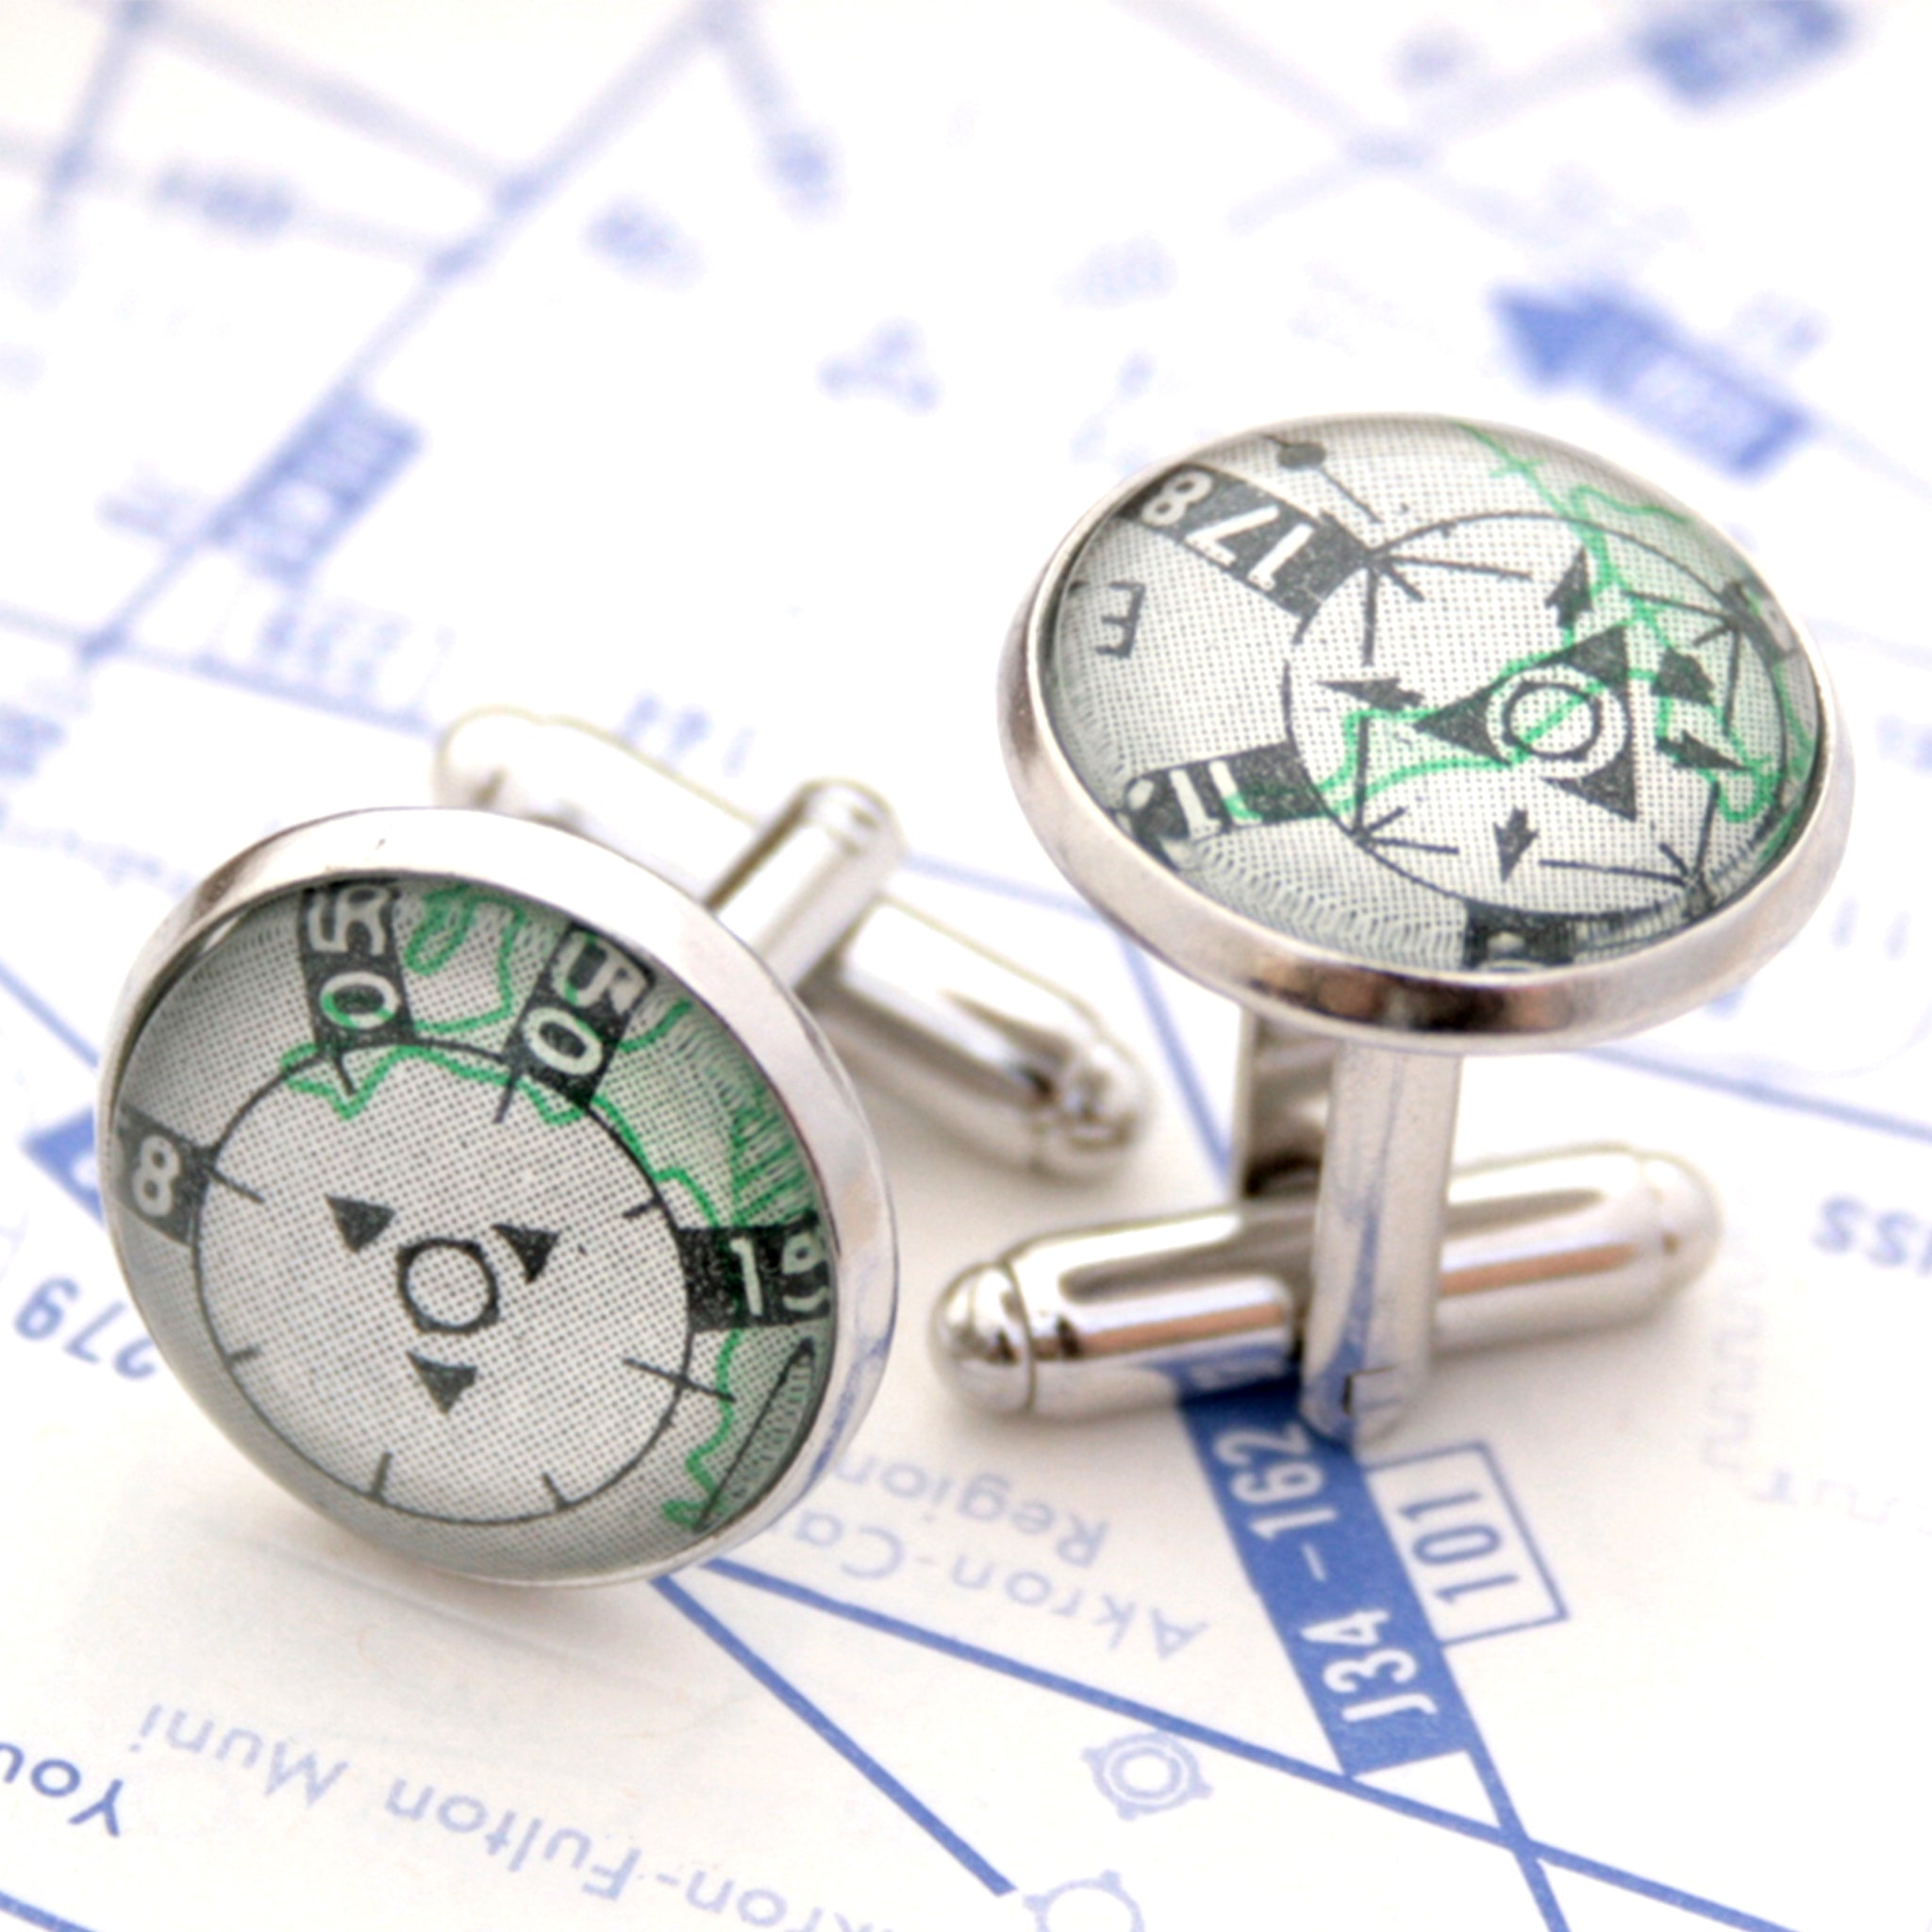 Pilot cufflinks made of aeronautical charts